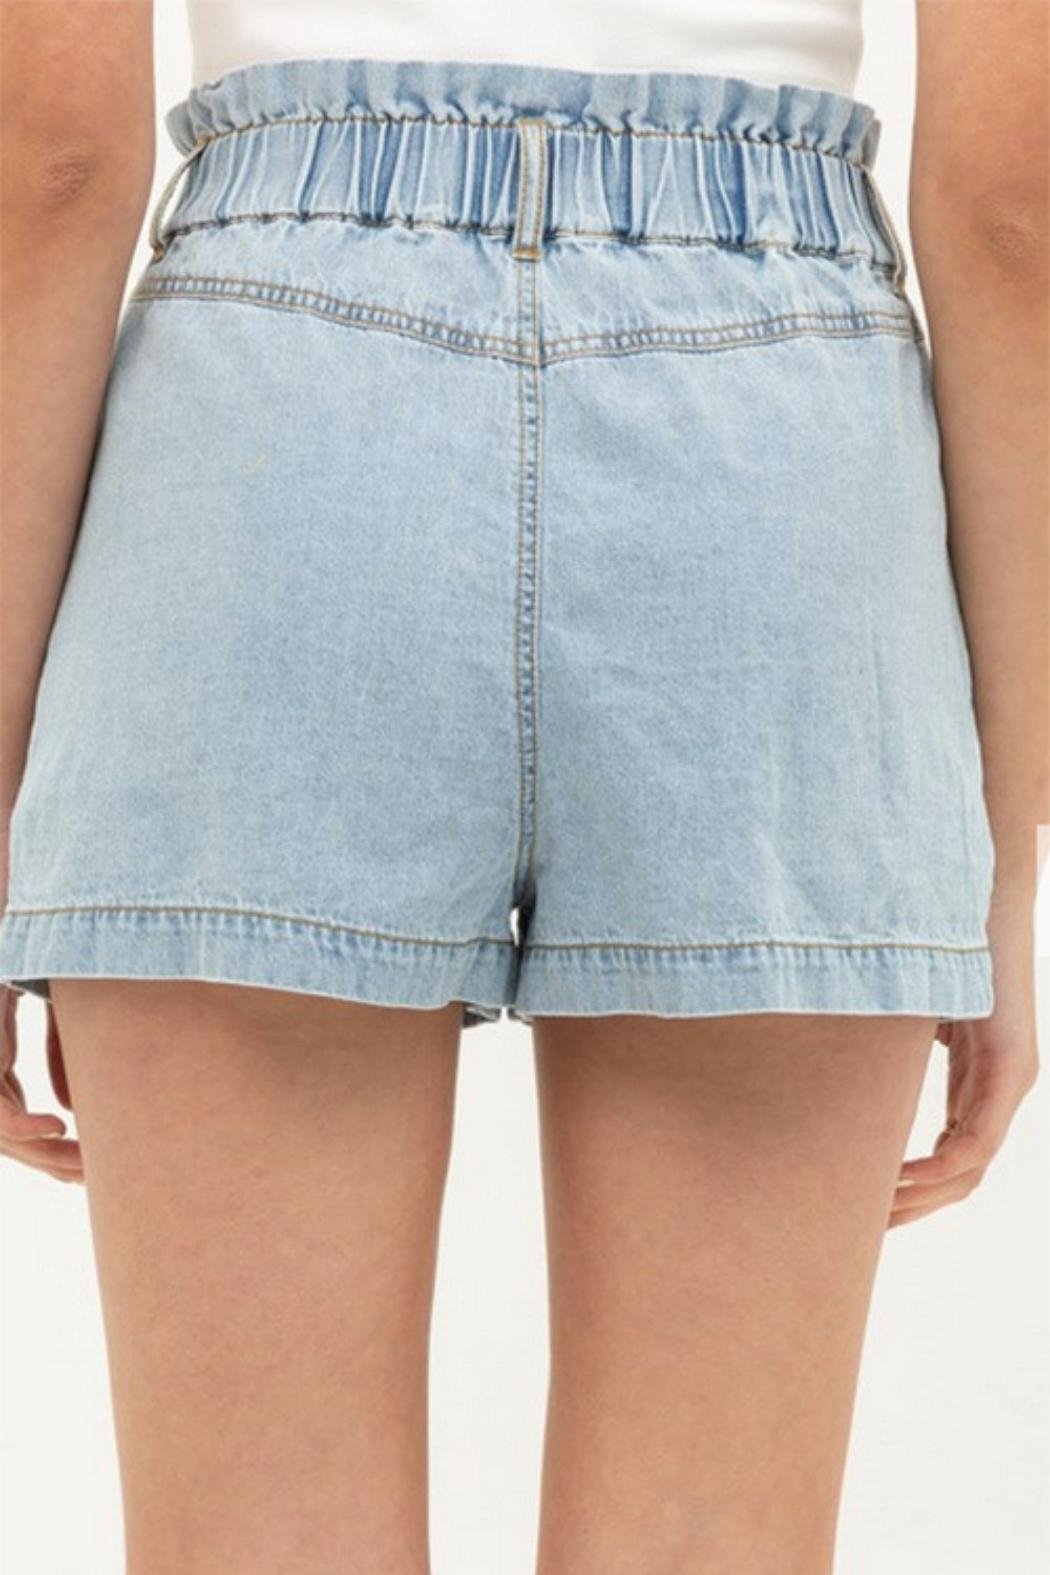 MONTREZ Buttoned Denim Shorts - Side Cropped Image